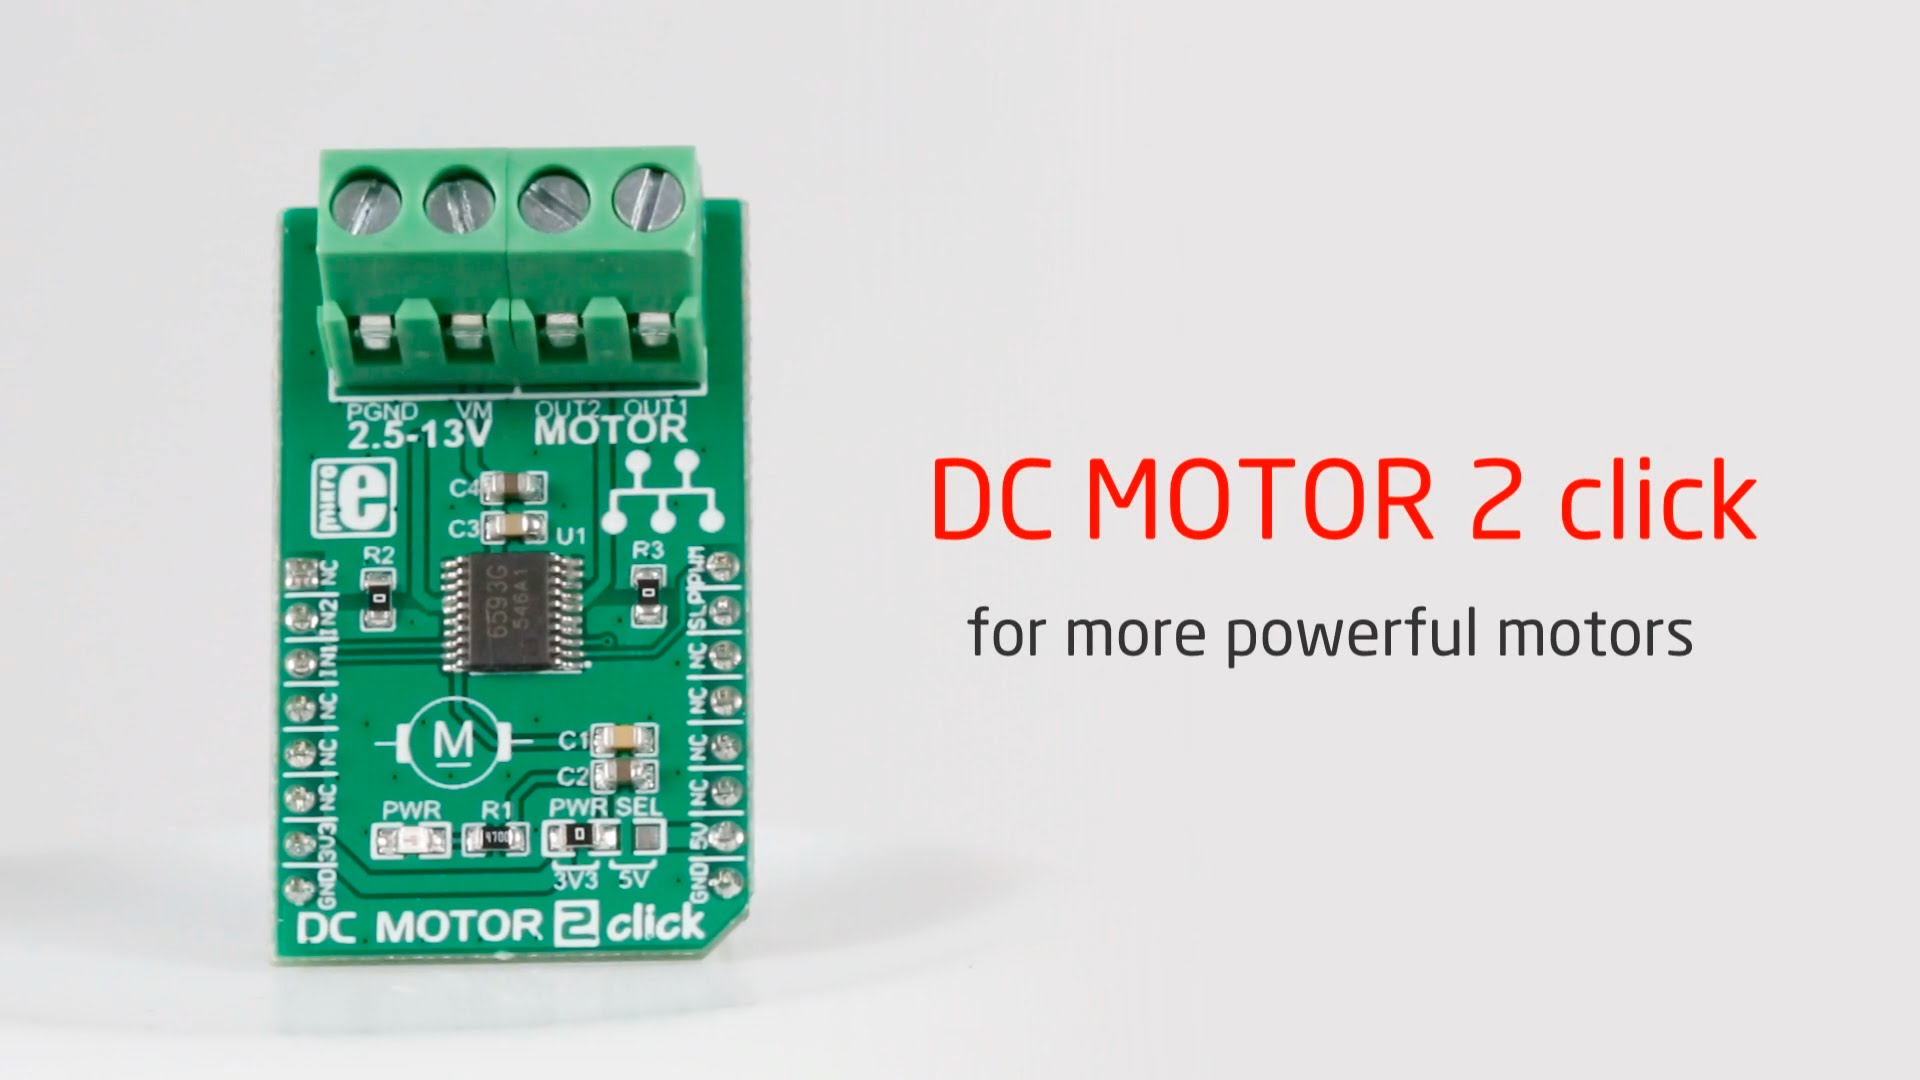 DC MOTOR 2 click released